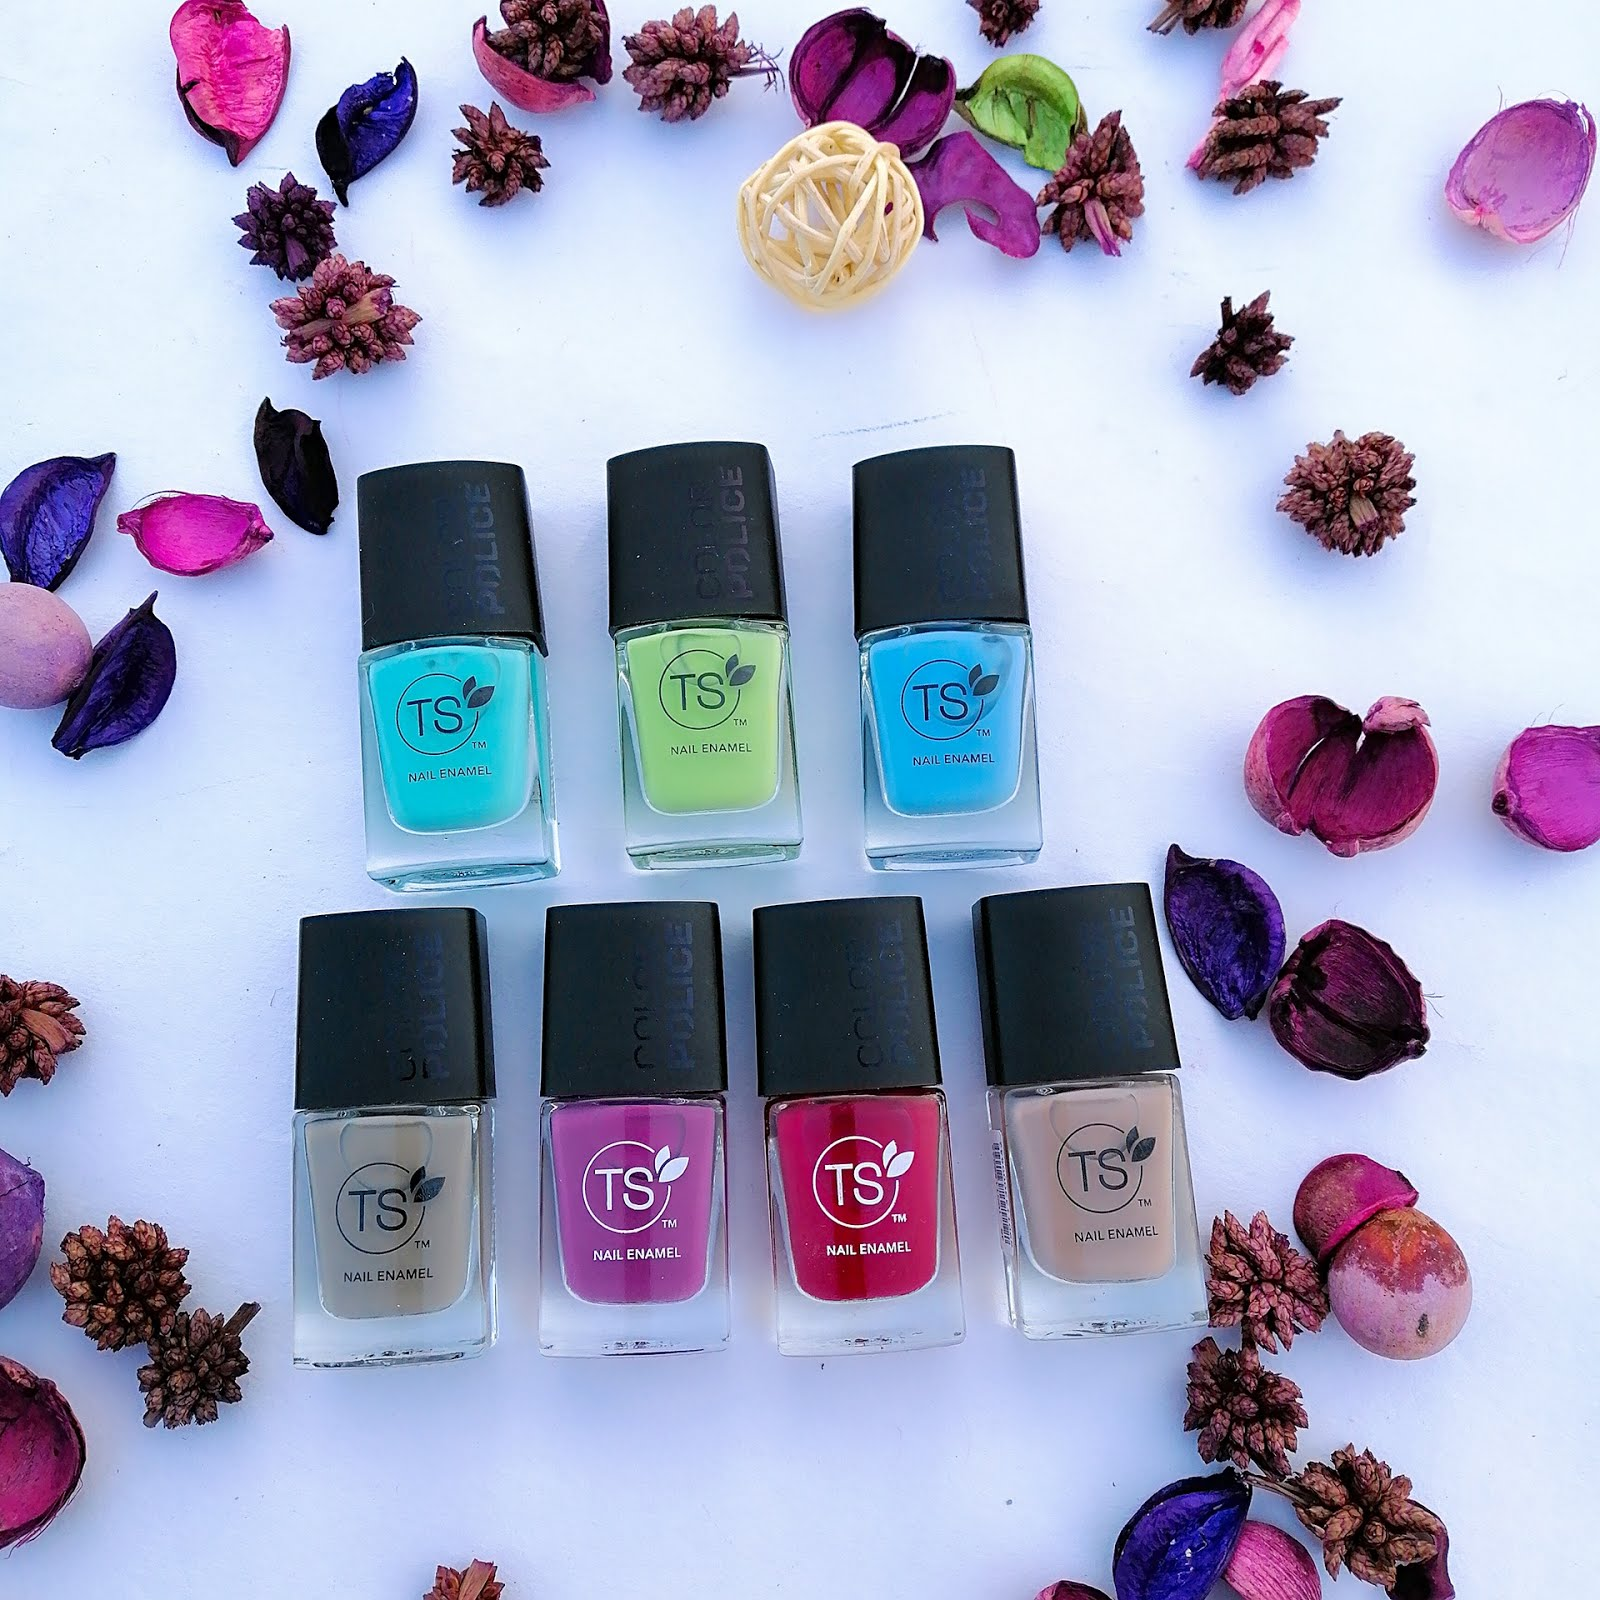 TS Color Police Nail Enamel Review & Swatches